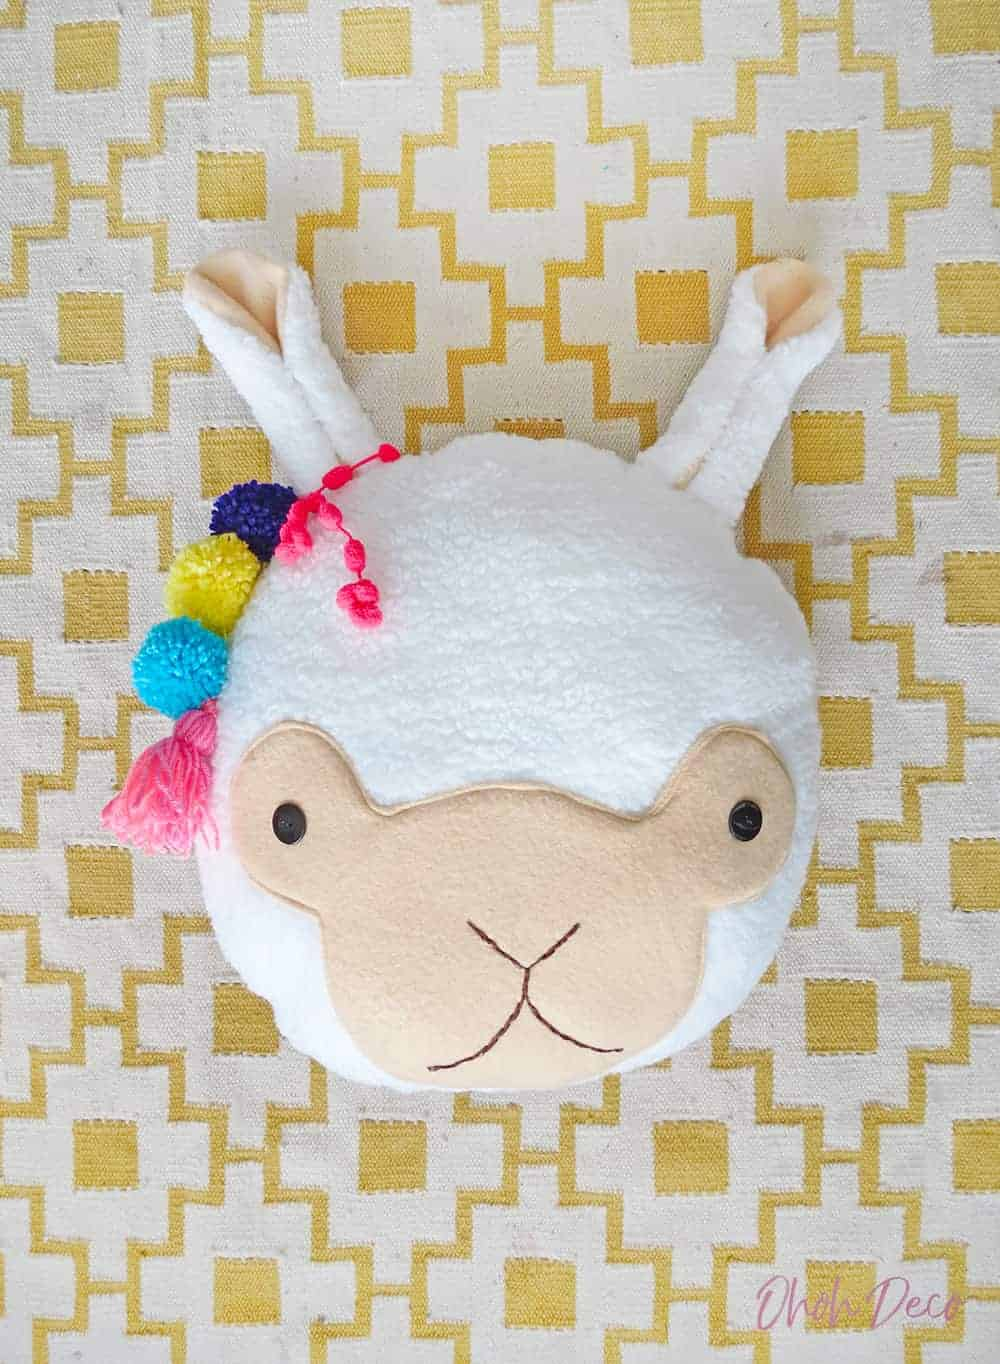 How to sew a Llama cushion